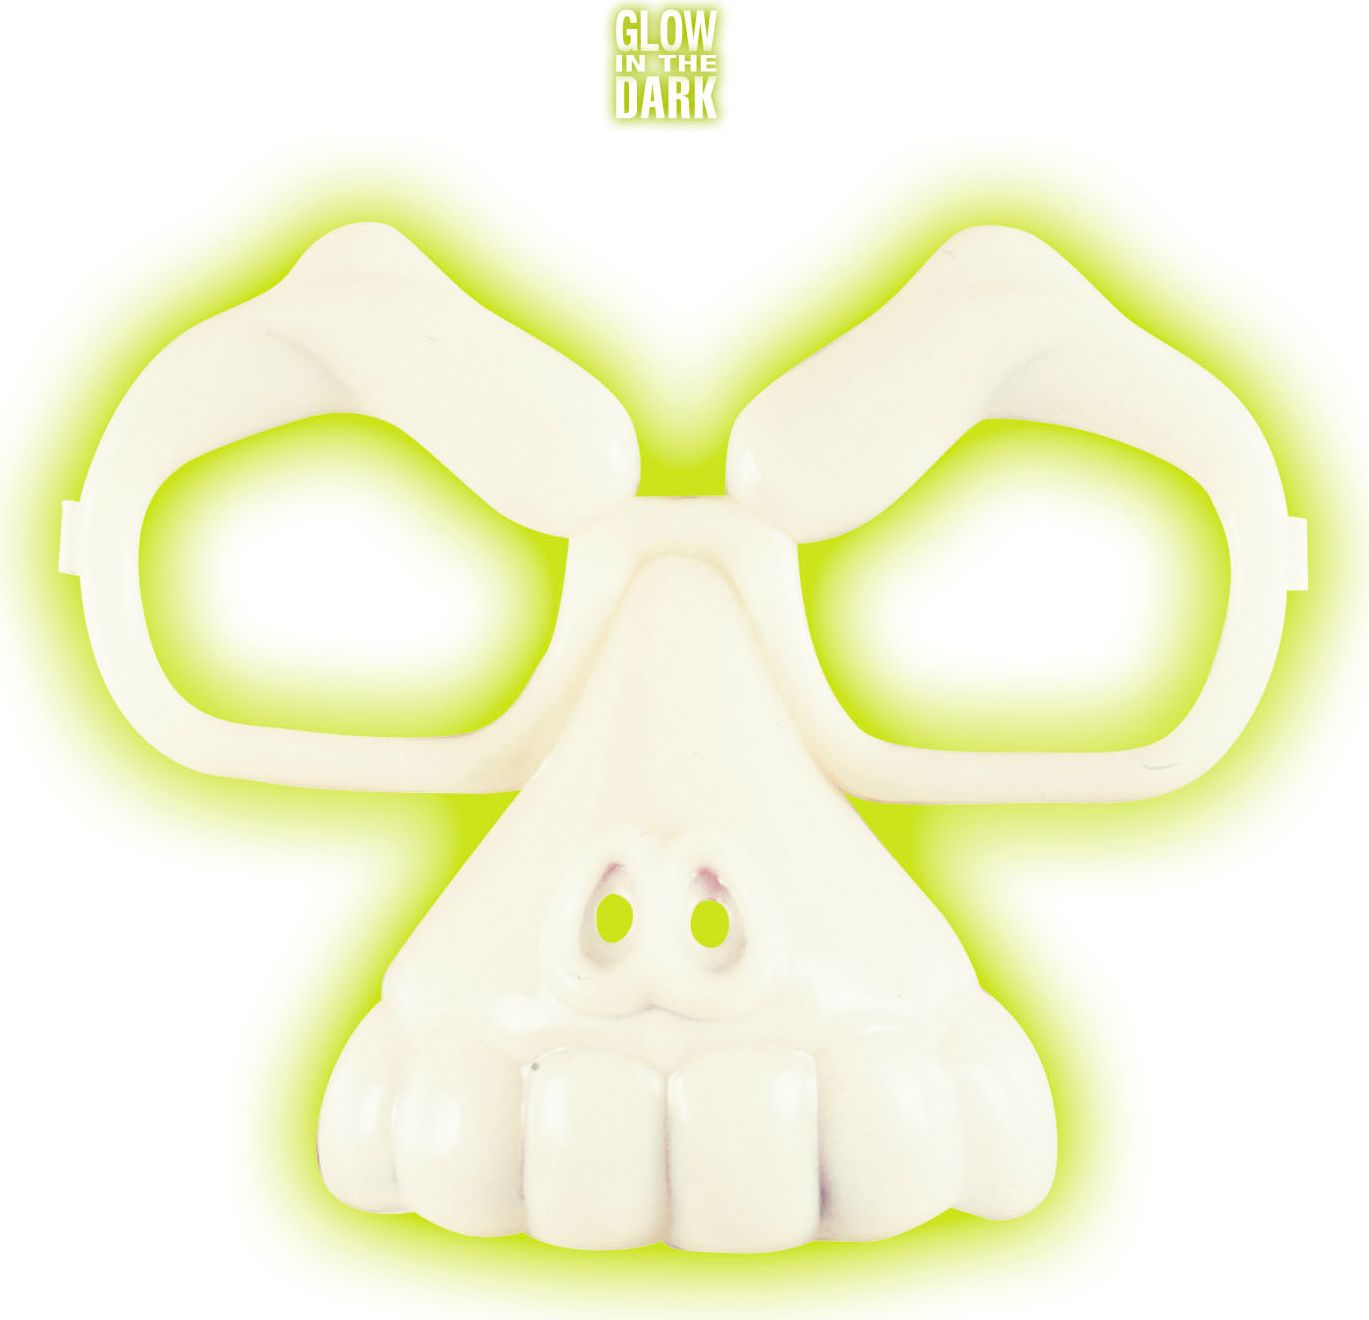 Glow in the dark schedel bril